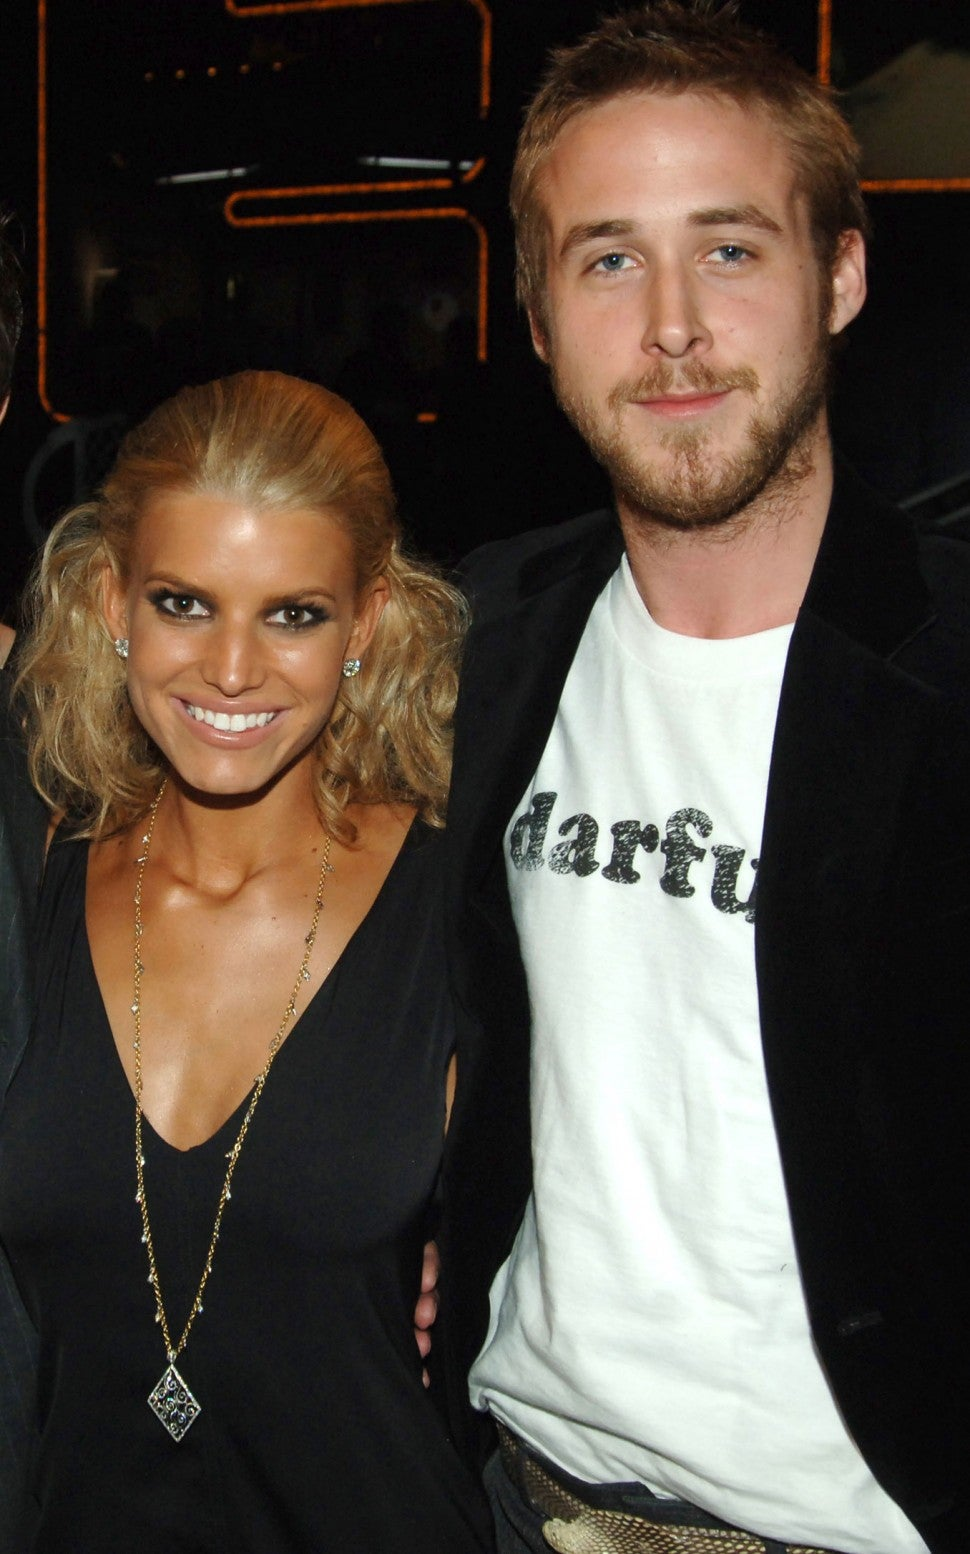 Jessica Simpson and Ryan Gosling